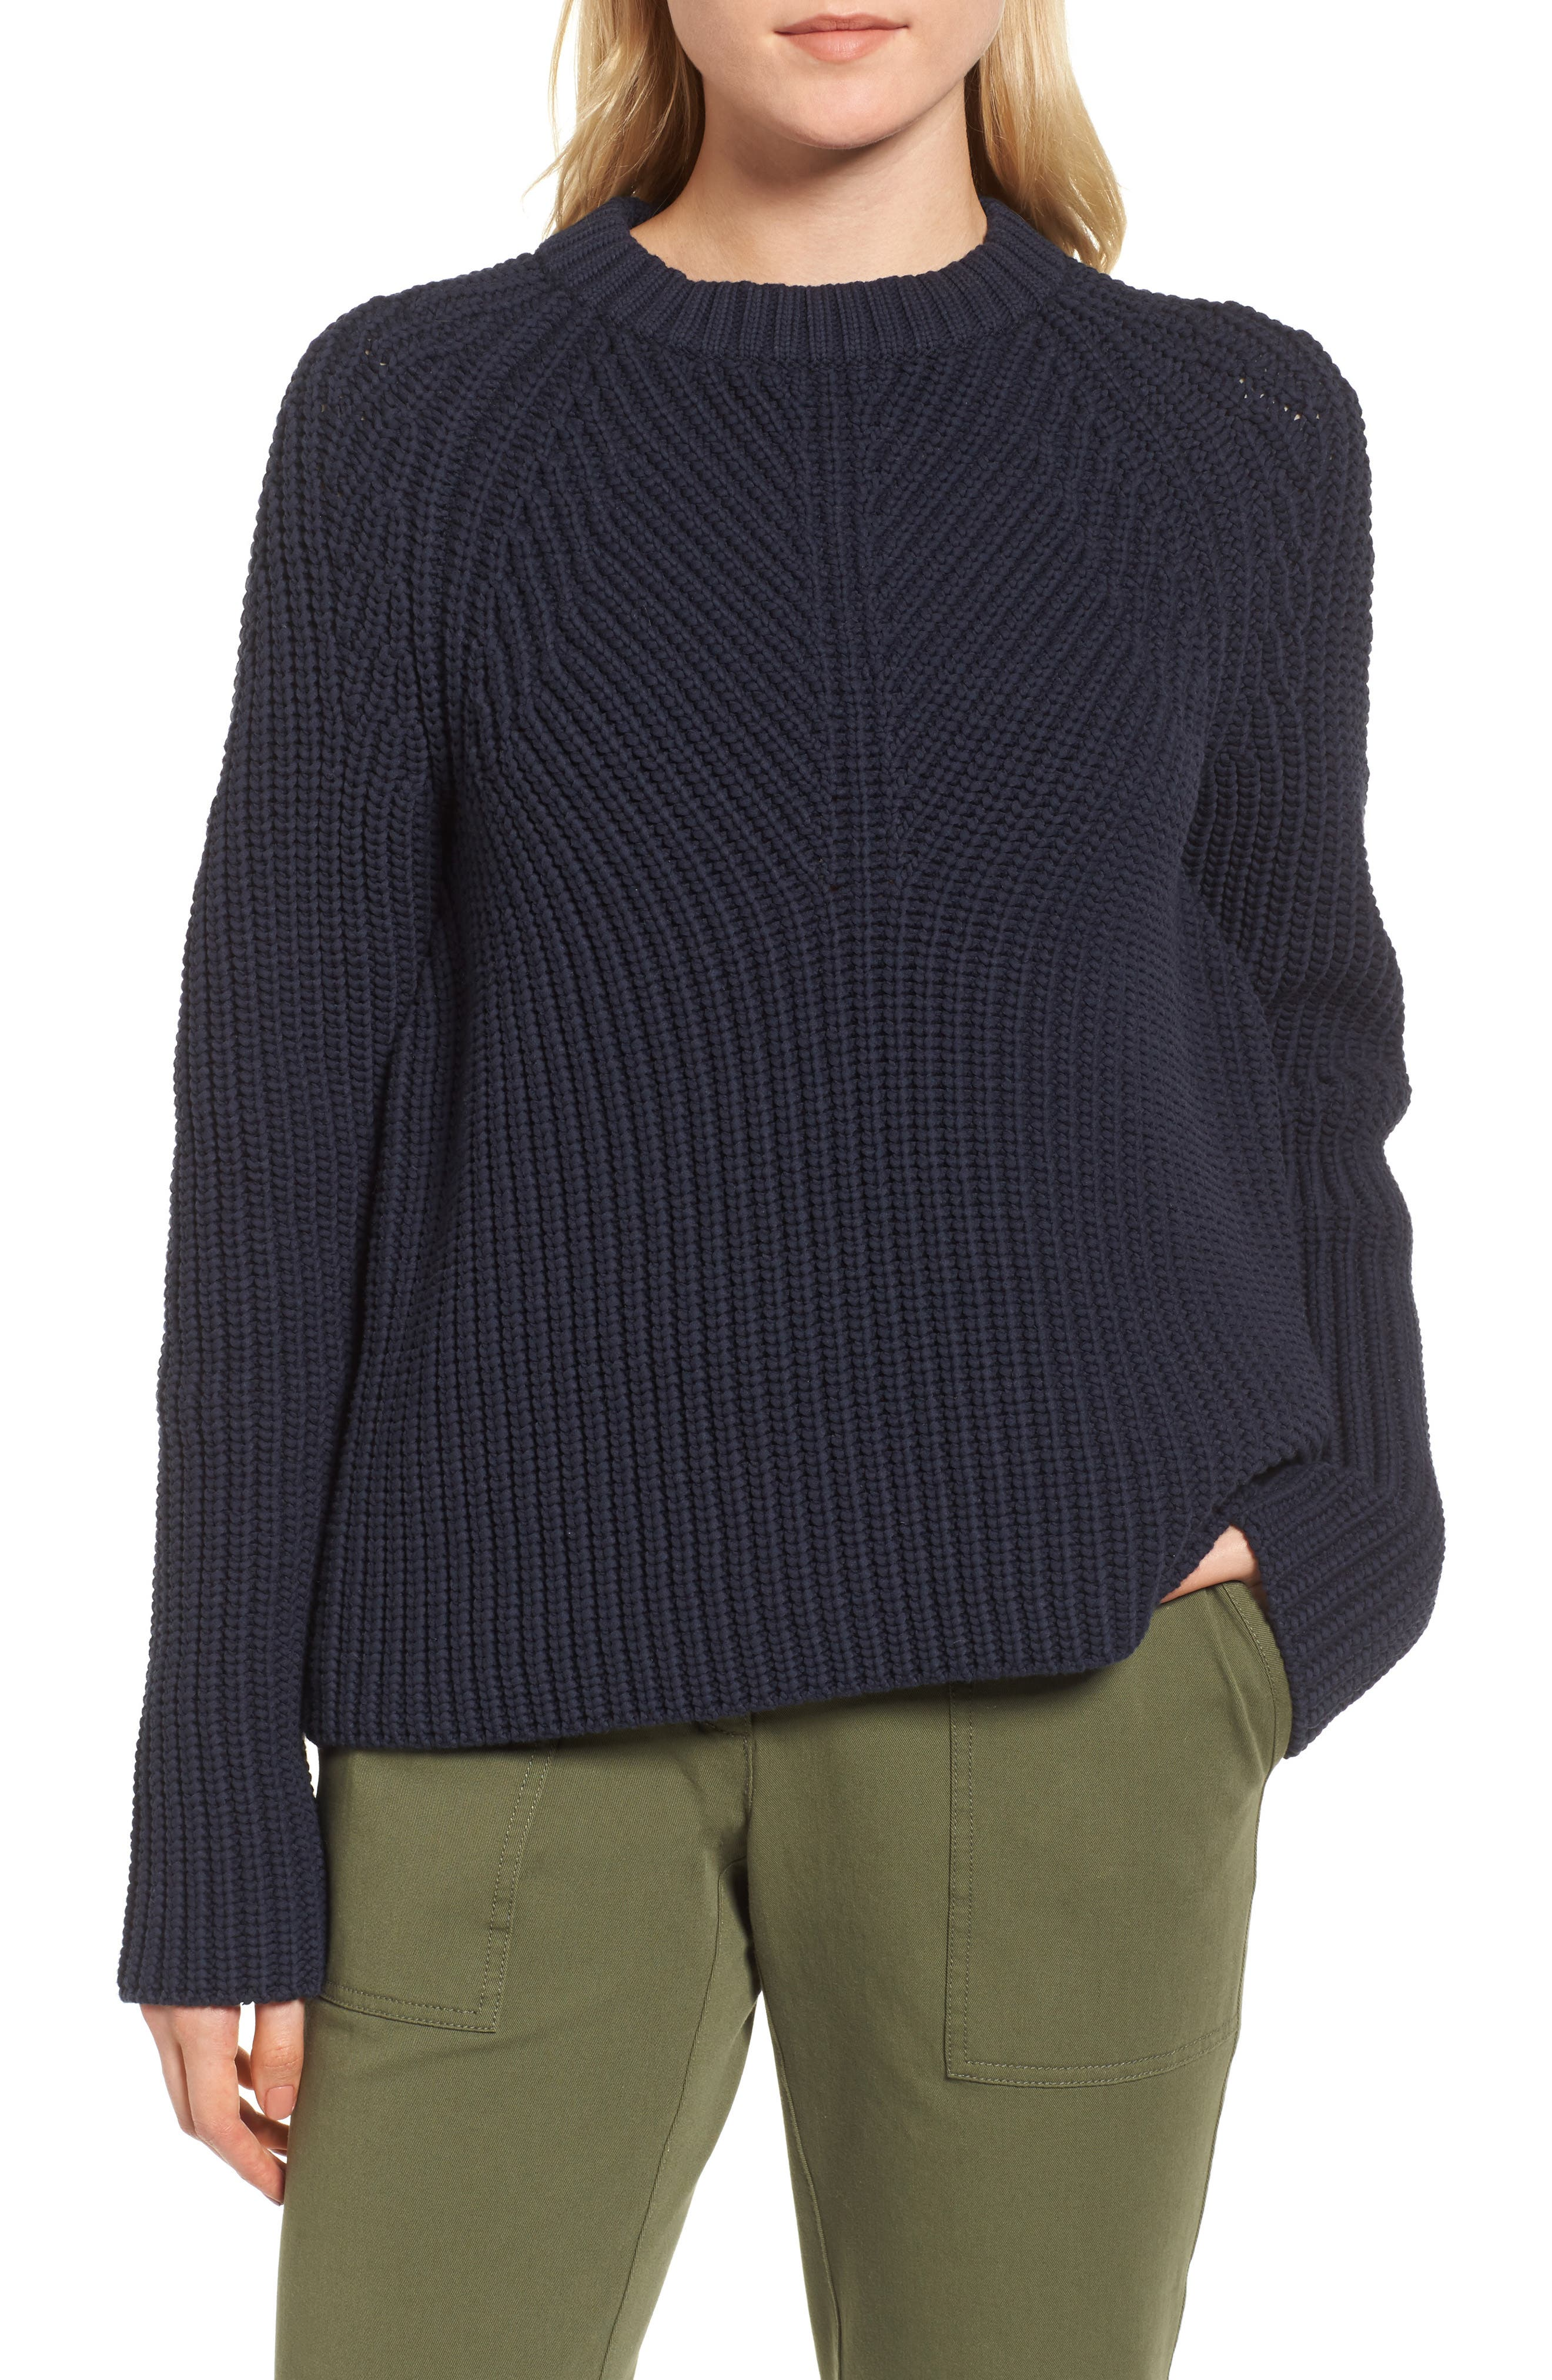 Alternate Image 1 Selected - Nordstrom Signature Raglan Sleeve Knit Sweater